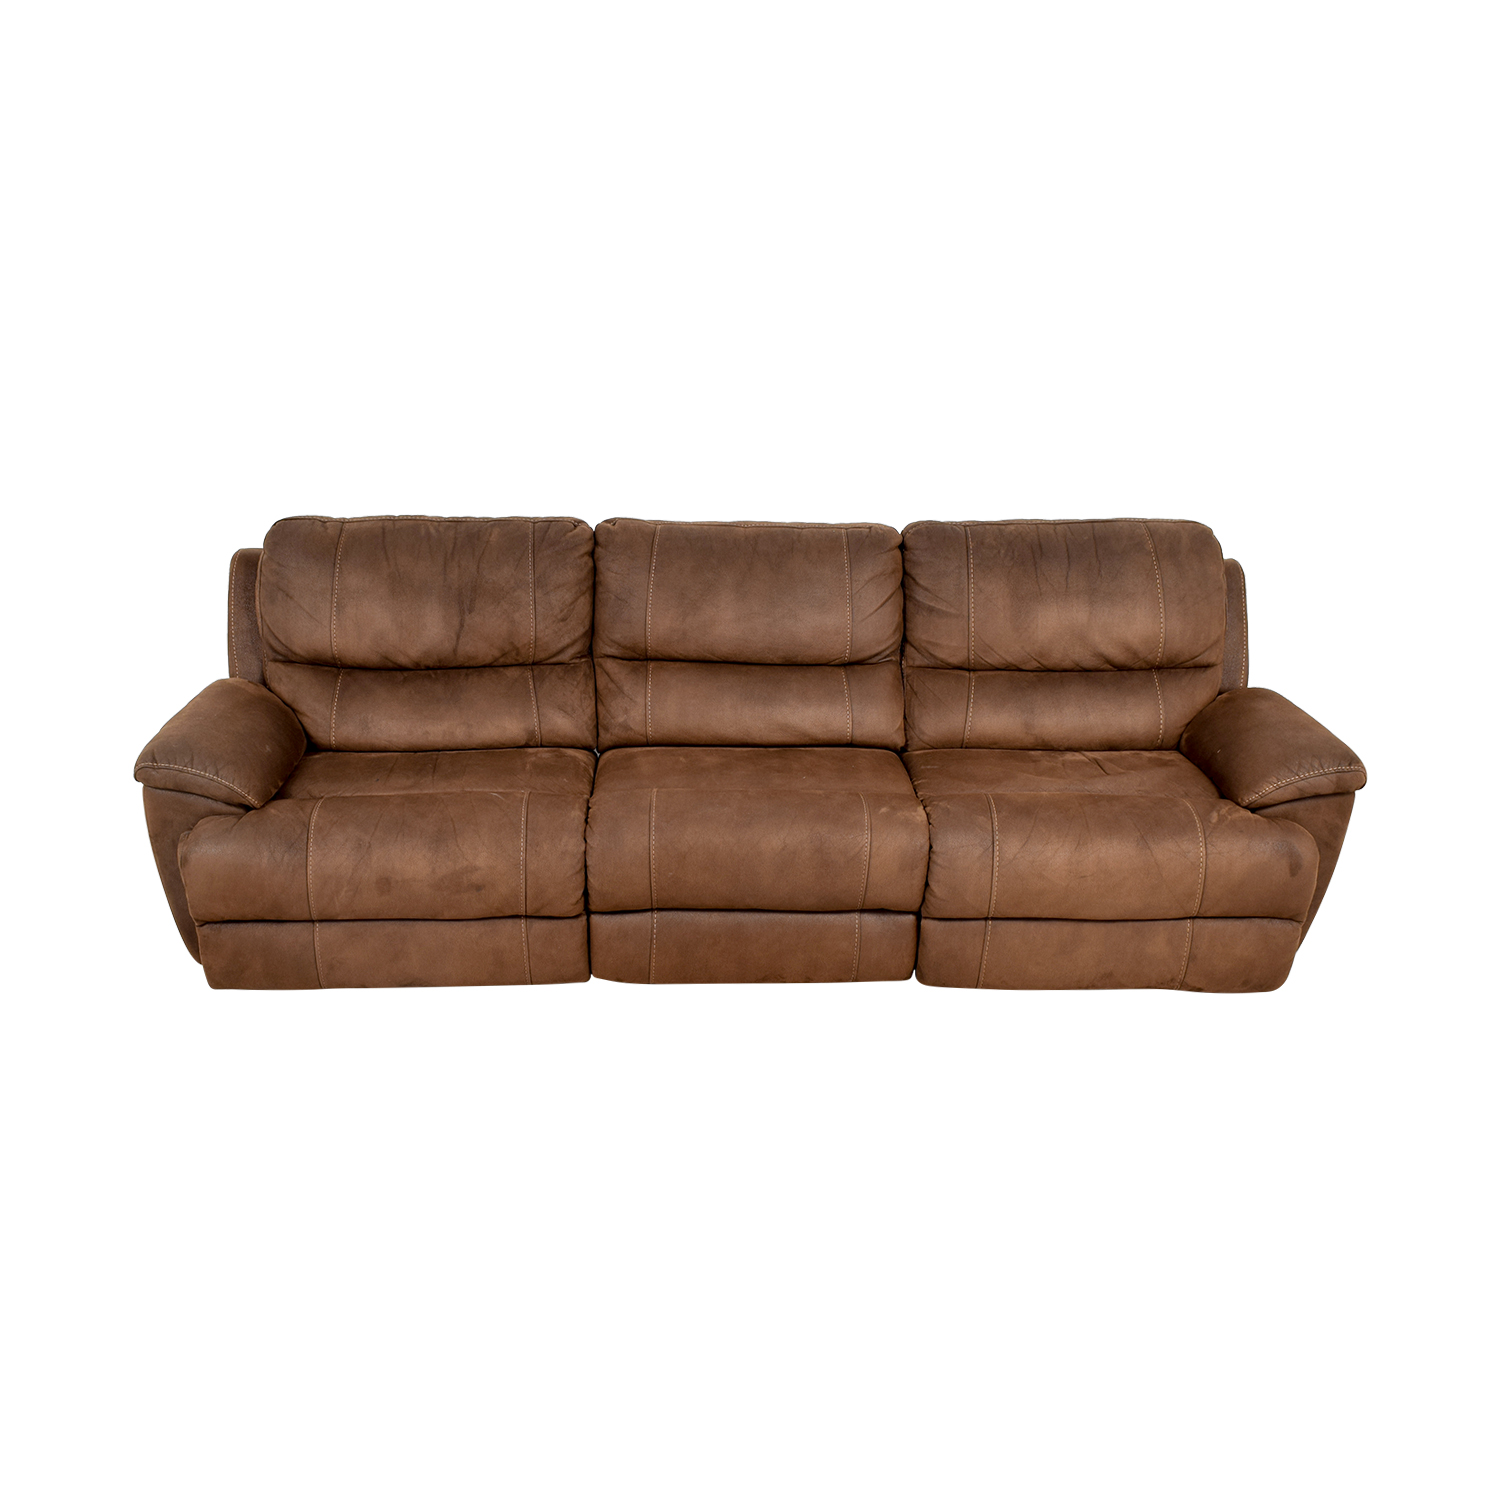 Havertys Havertys Reclining Sofa dimensions